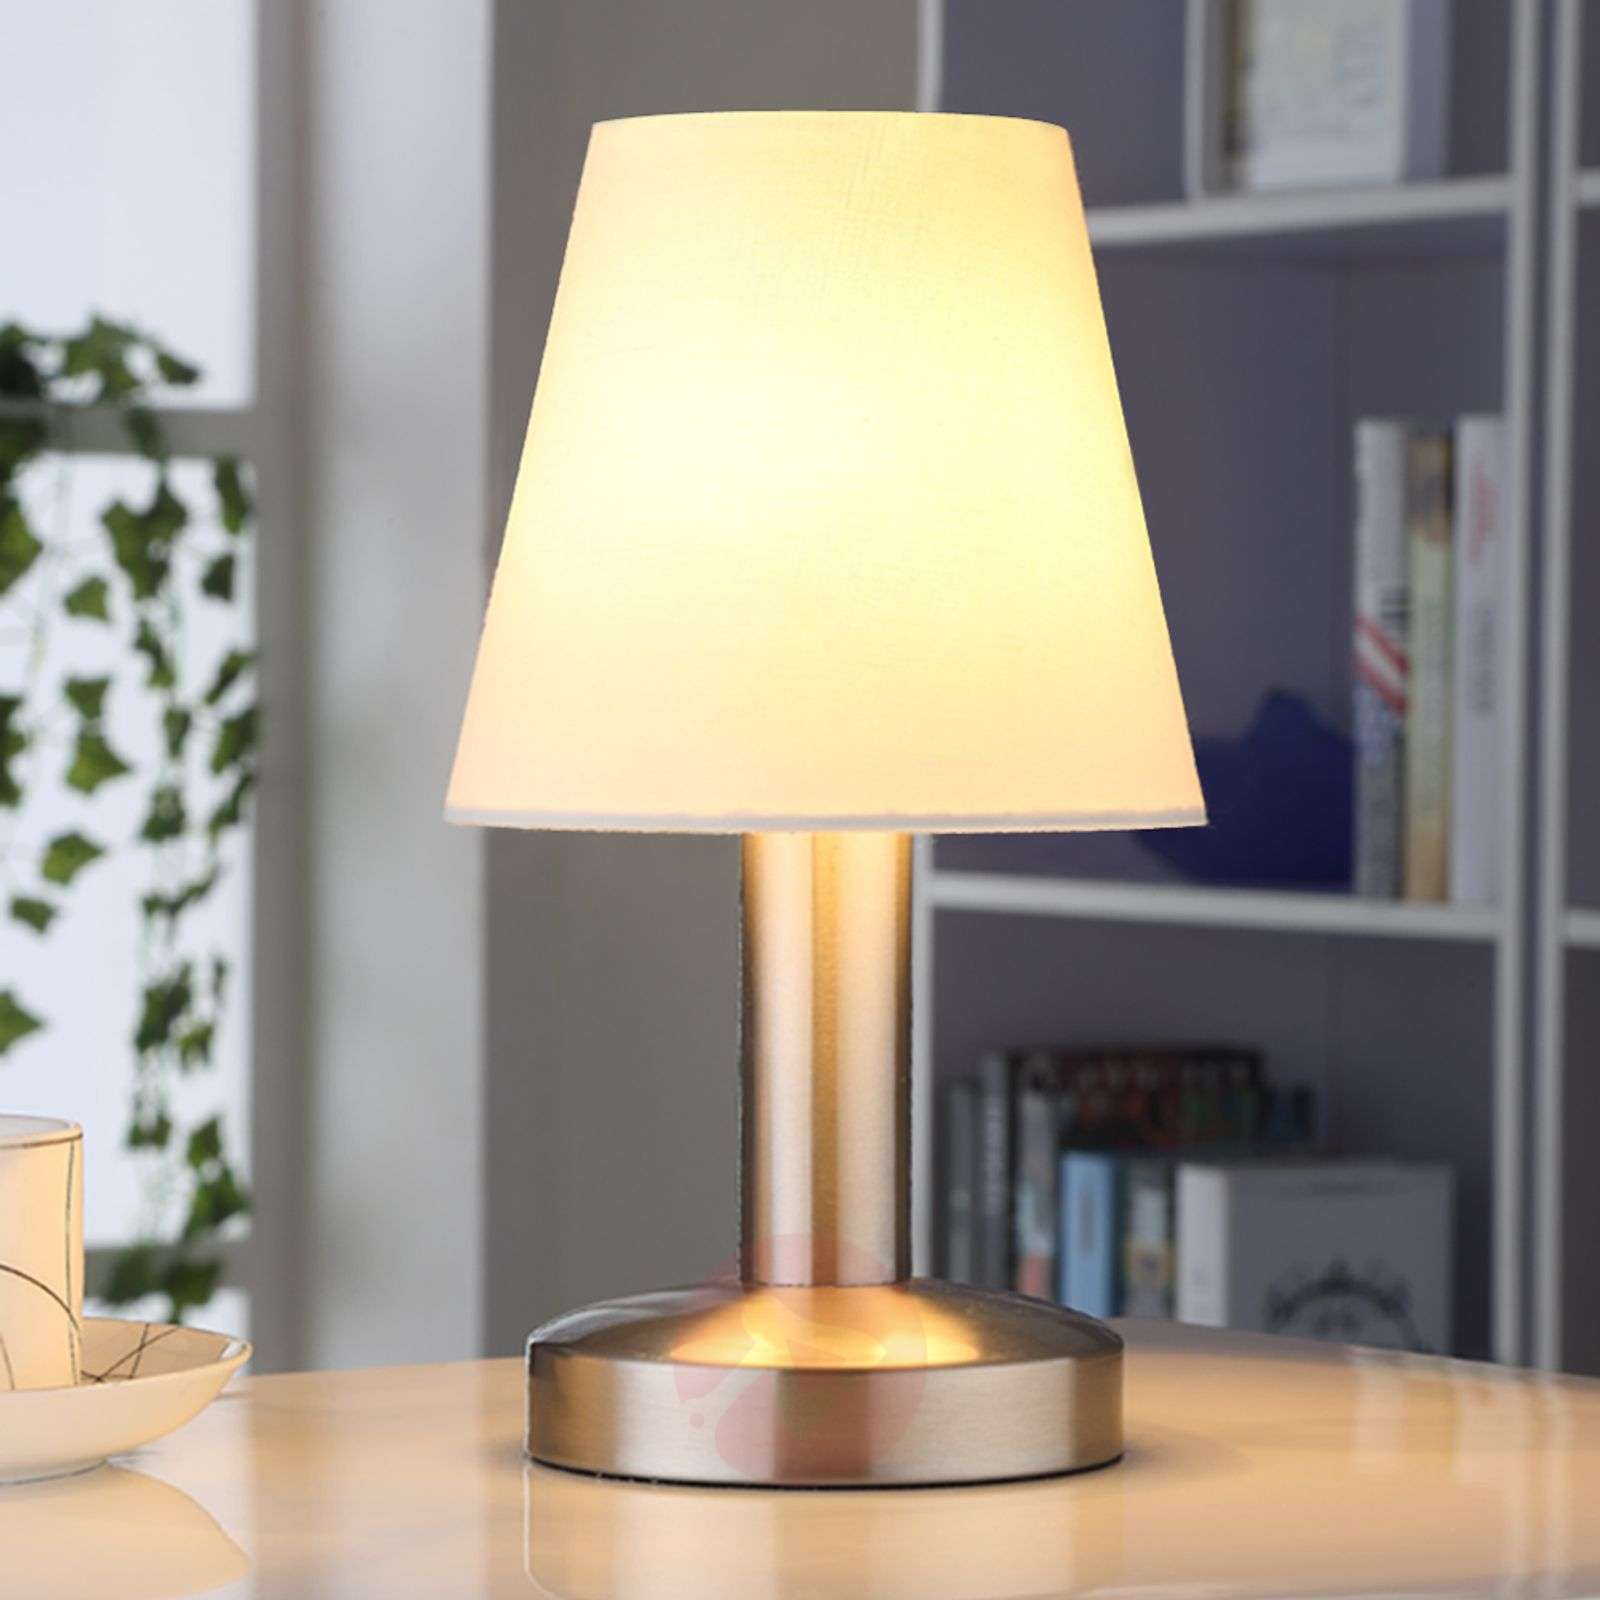 Lighting Lamp: Bedside Table Lamp Hanno W. White Fabric Lampshade